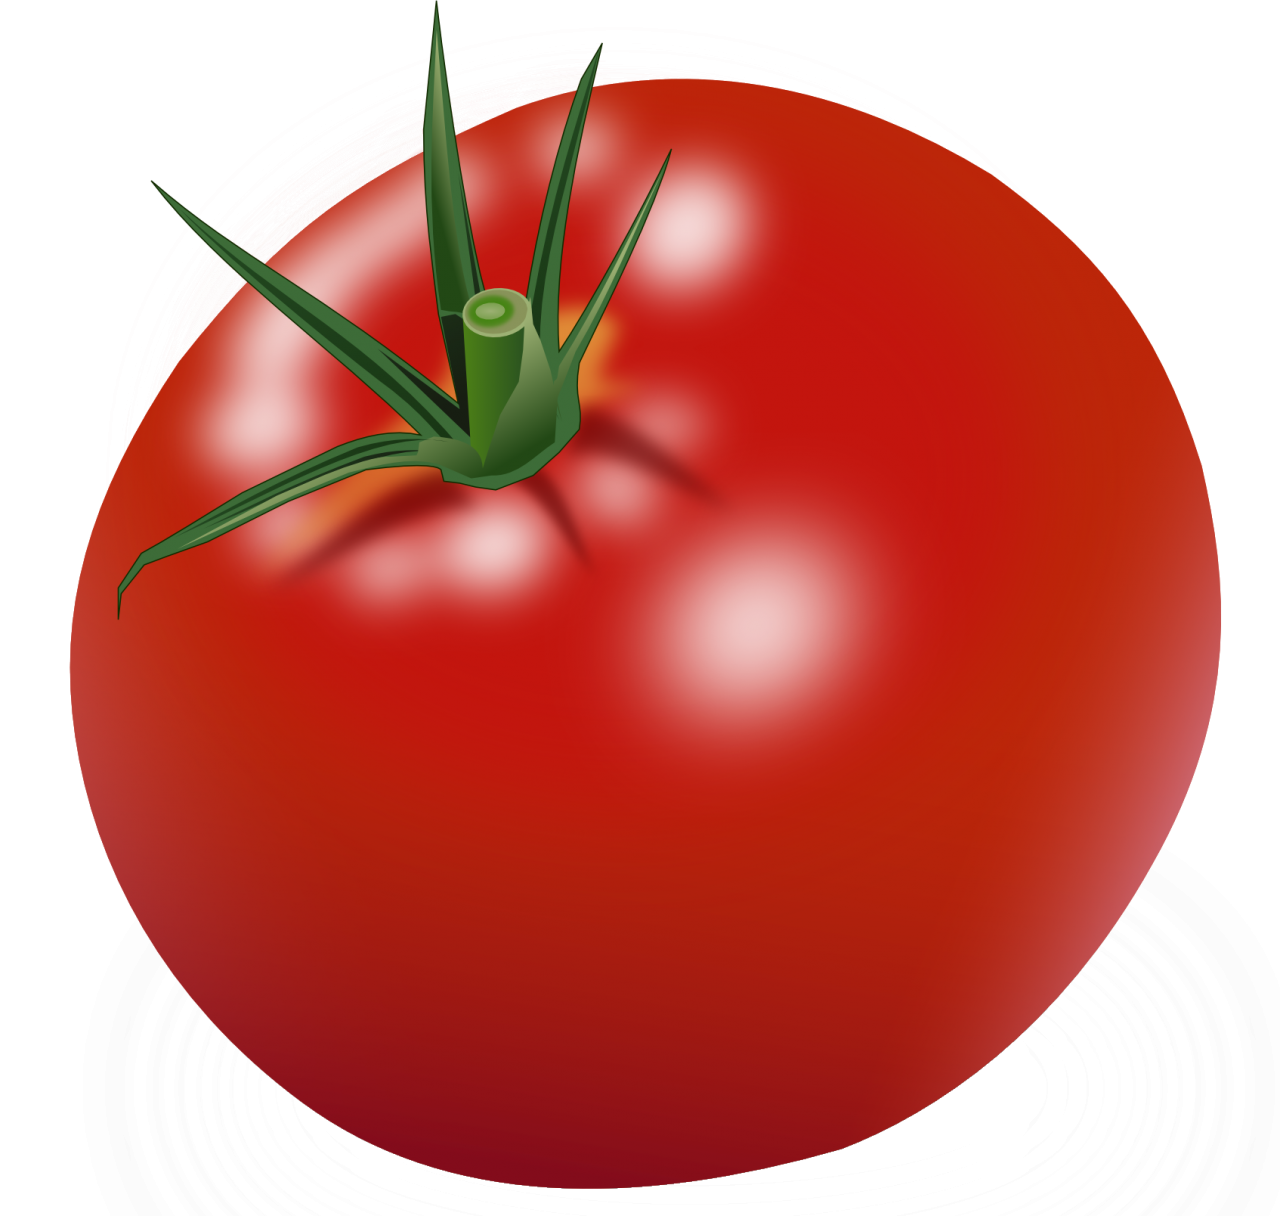 Red Tomatoes Png Image Purepng Free Transparent Cc0 Png Image Library Red Tomato Tomato Red Fruit